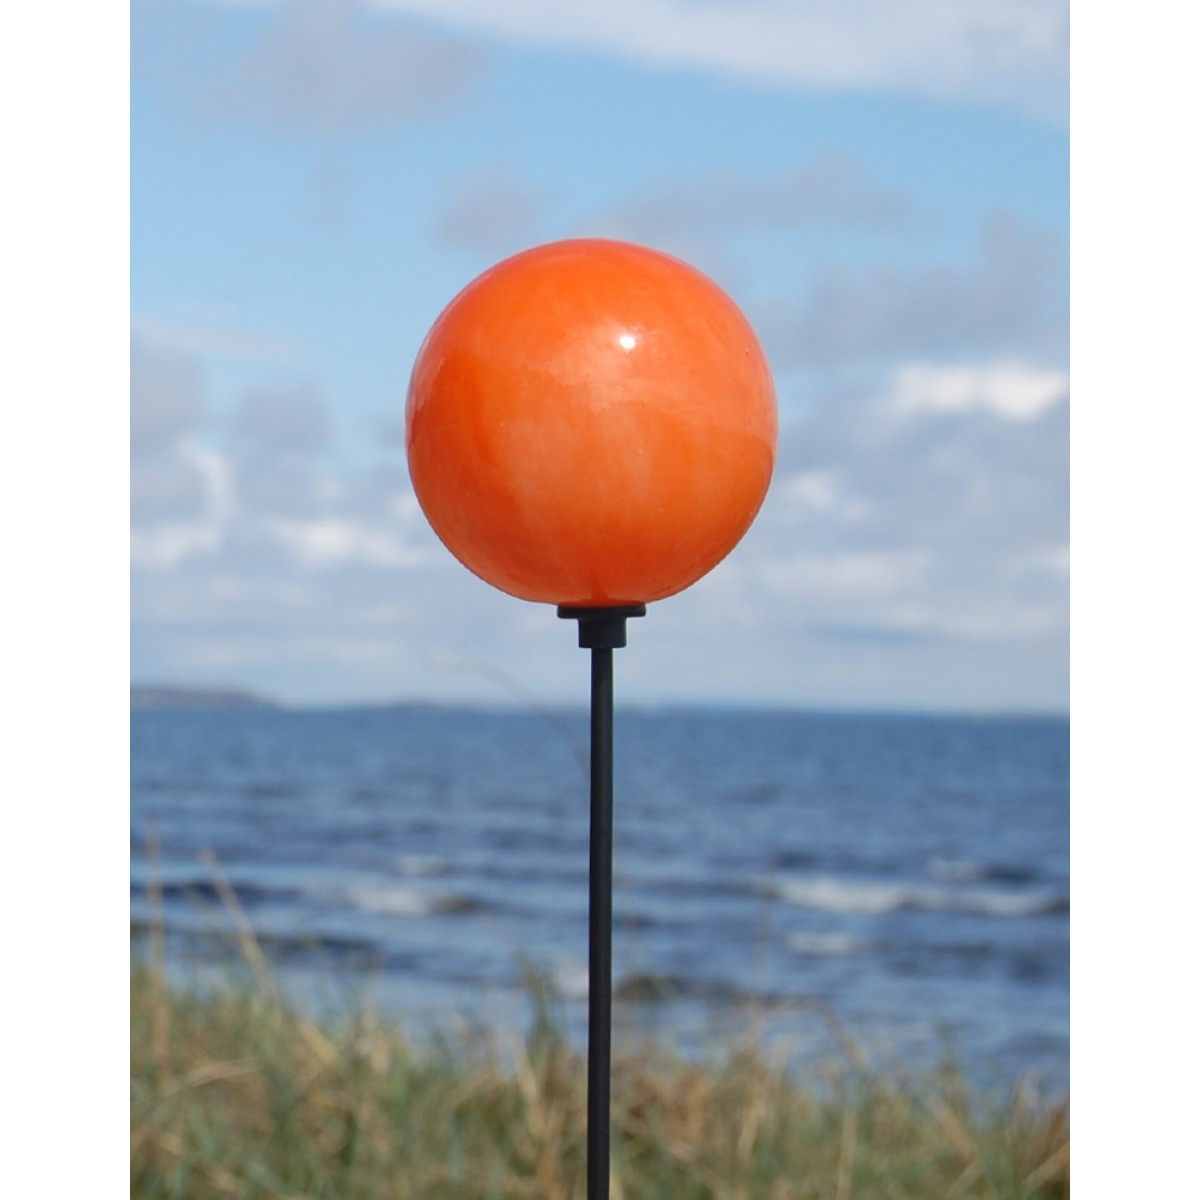 Orange kugle på stranden